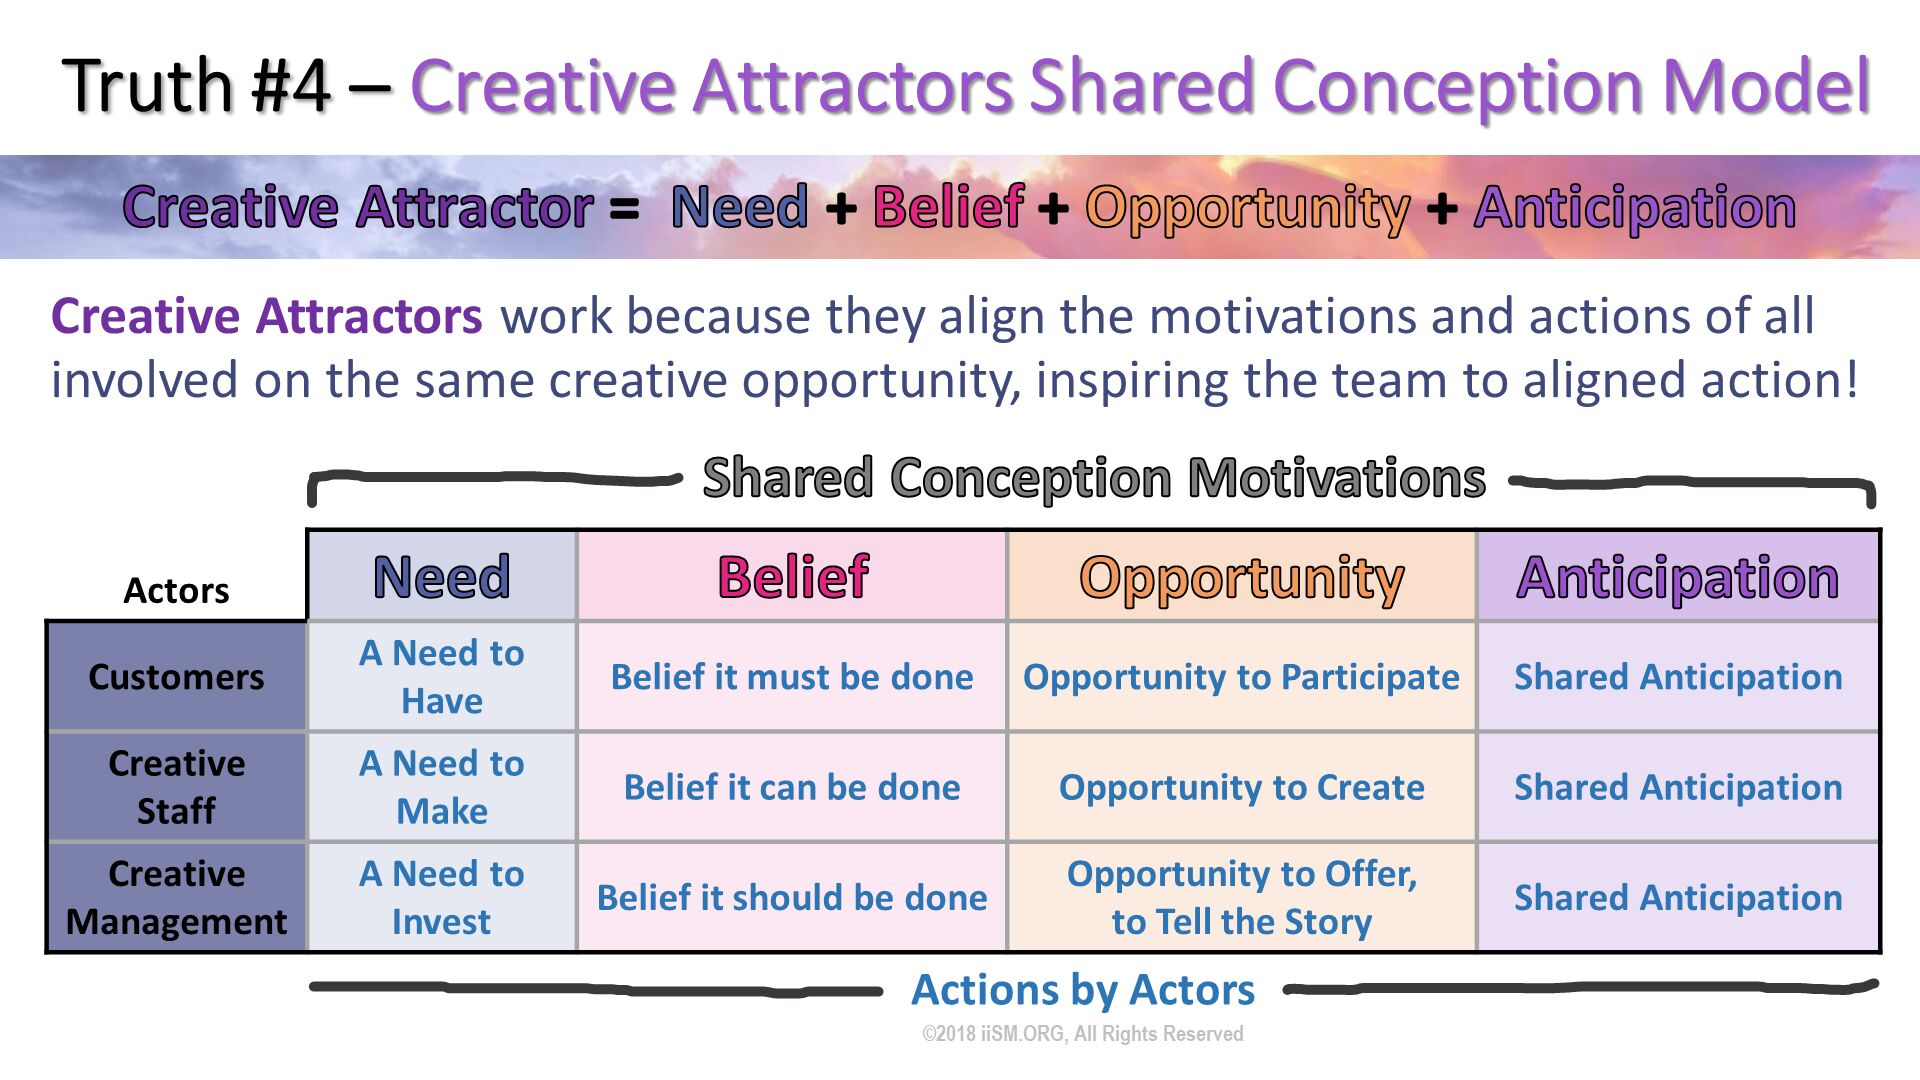 Truth #4 – Creative Attractors Shared Conception Model. Creative Attractors work because they align the motivations and actions of all involved on the same creative opportunity, inspiring the team to aligned action! . Shared Conception Motivations. Actions by Actors. ©2018 iiSM.ORG, All Rights Reserved.